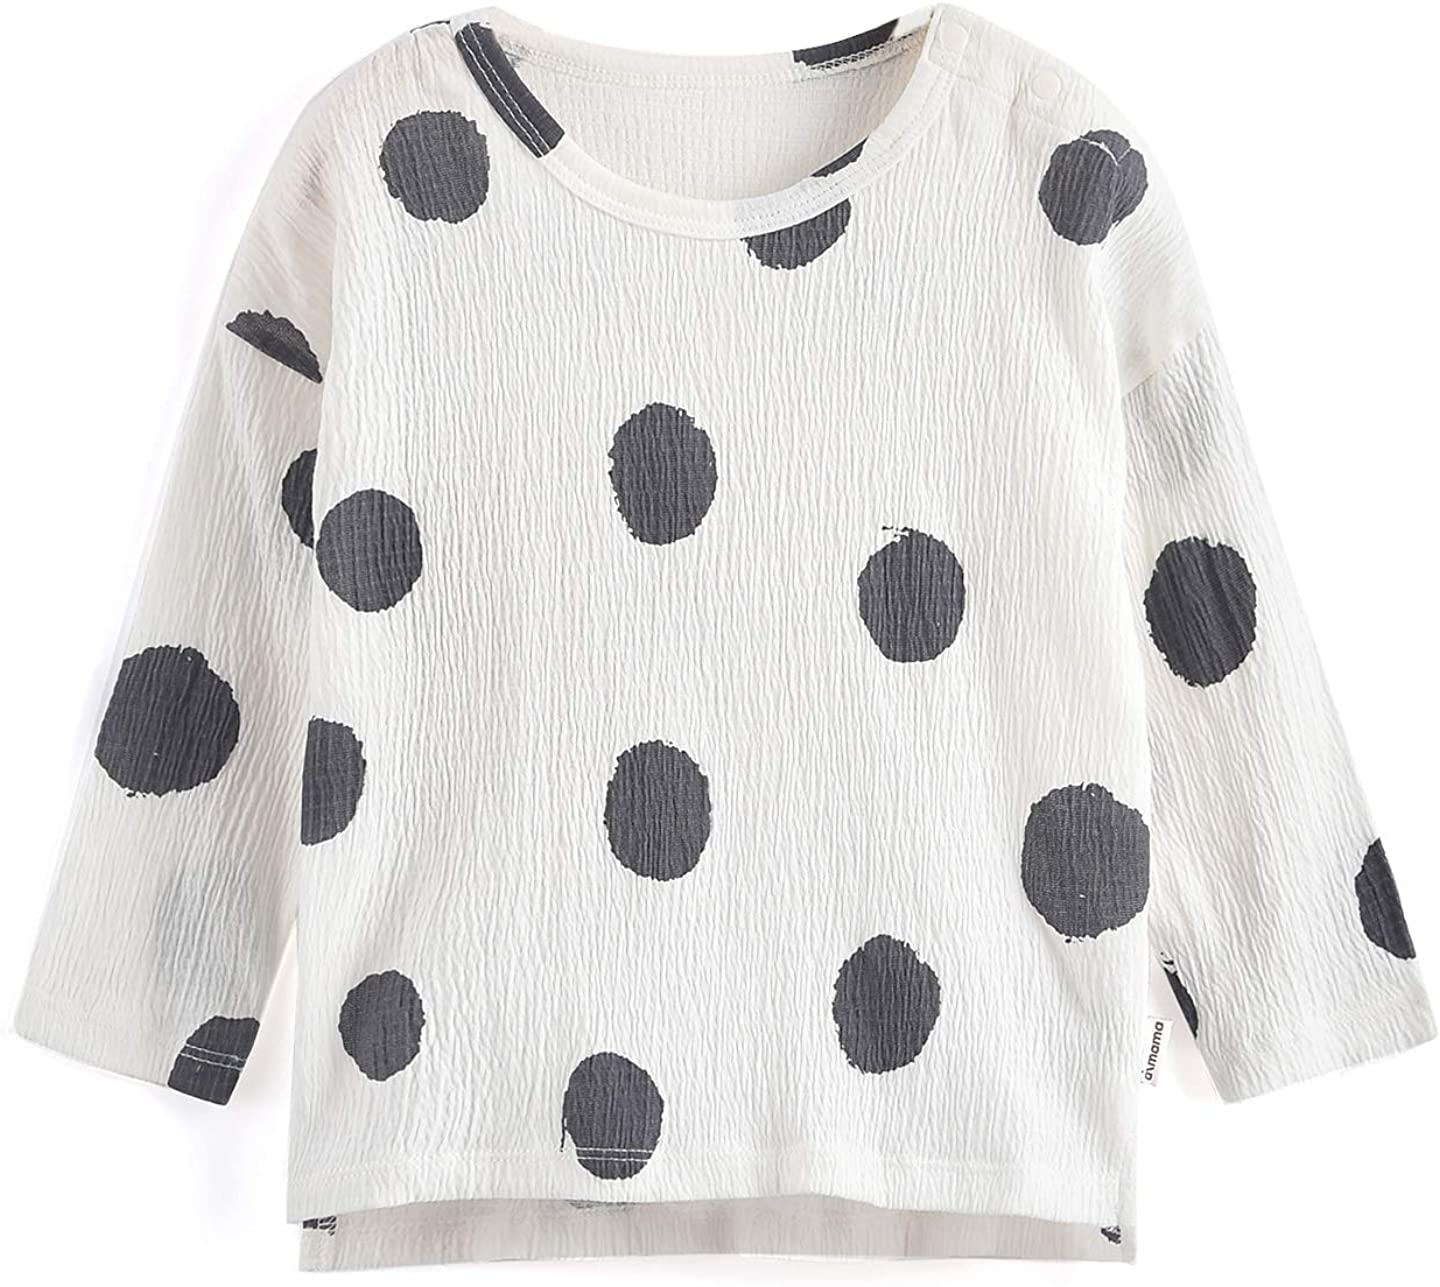 Aimama Toddler Baby T-Shirts, Long Sleeve Summer 100% Cotton Tee Dot Printed White Tops Clothes for 1-6Y Kids